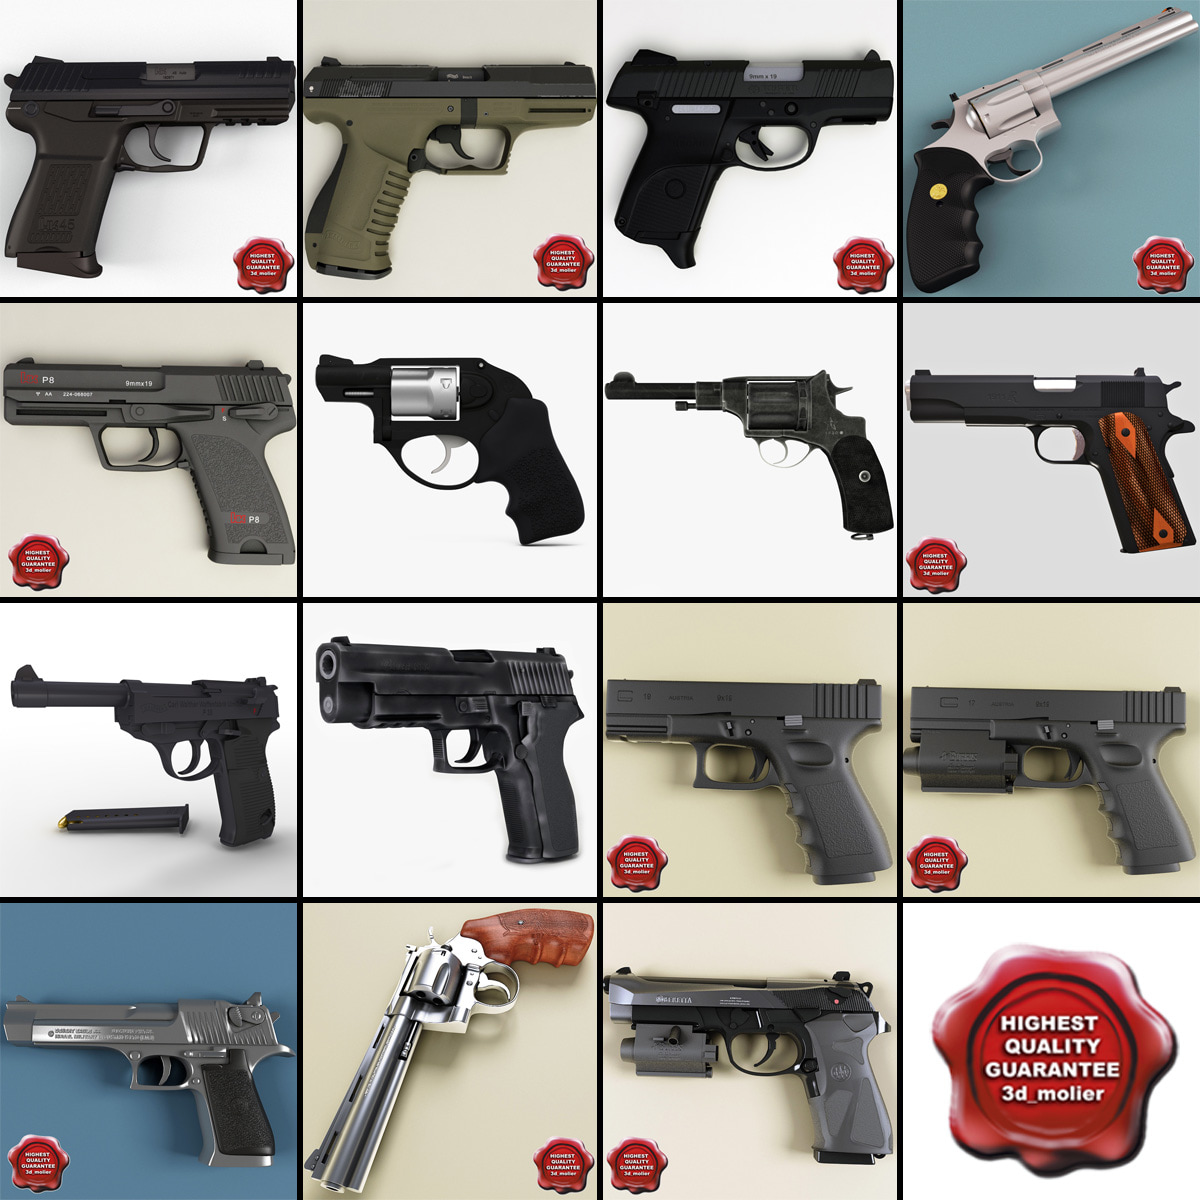 Pistols_Collection_V6_000.jpg